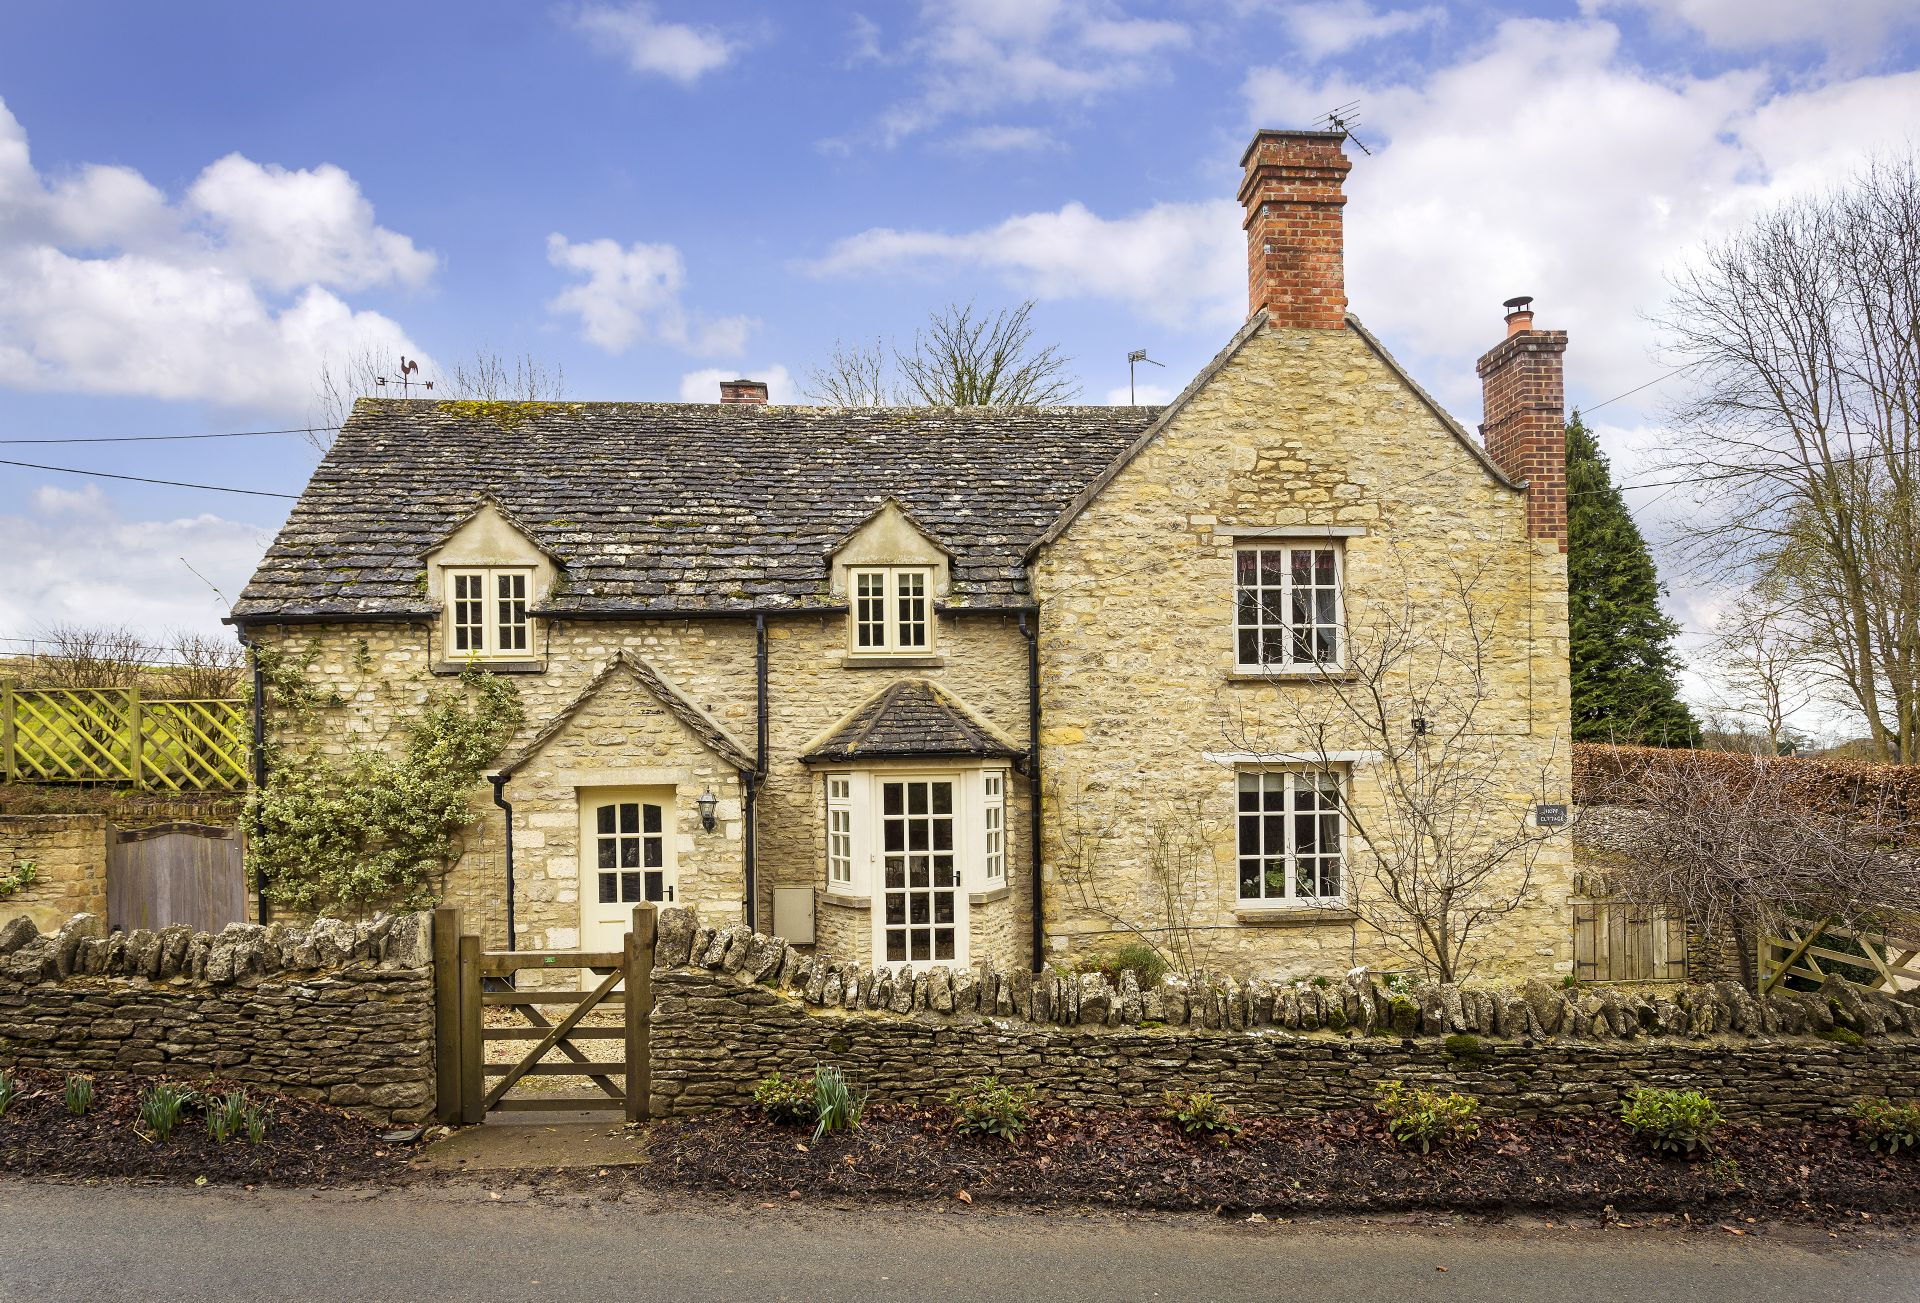 Hope Cottage is set on the edge of Quenington in the Coln Valley and just a few miles from Bibury amidst rolling countryside